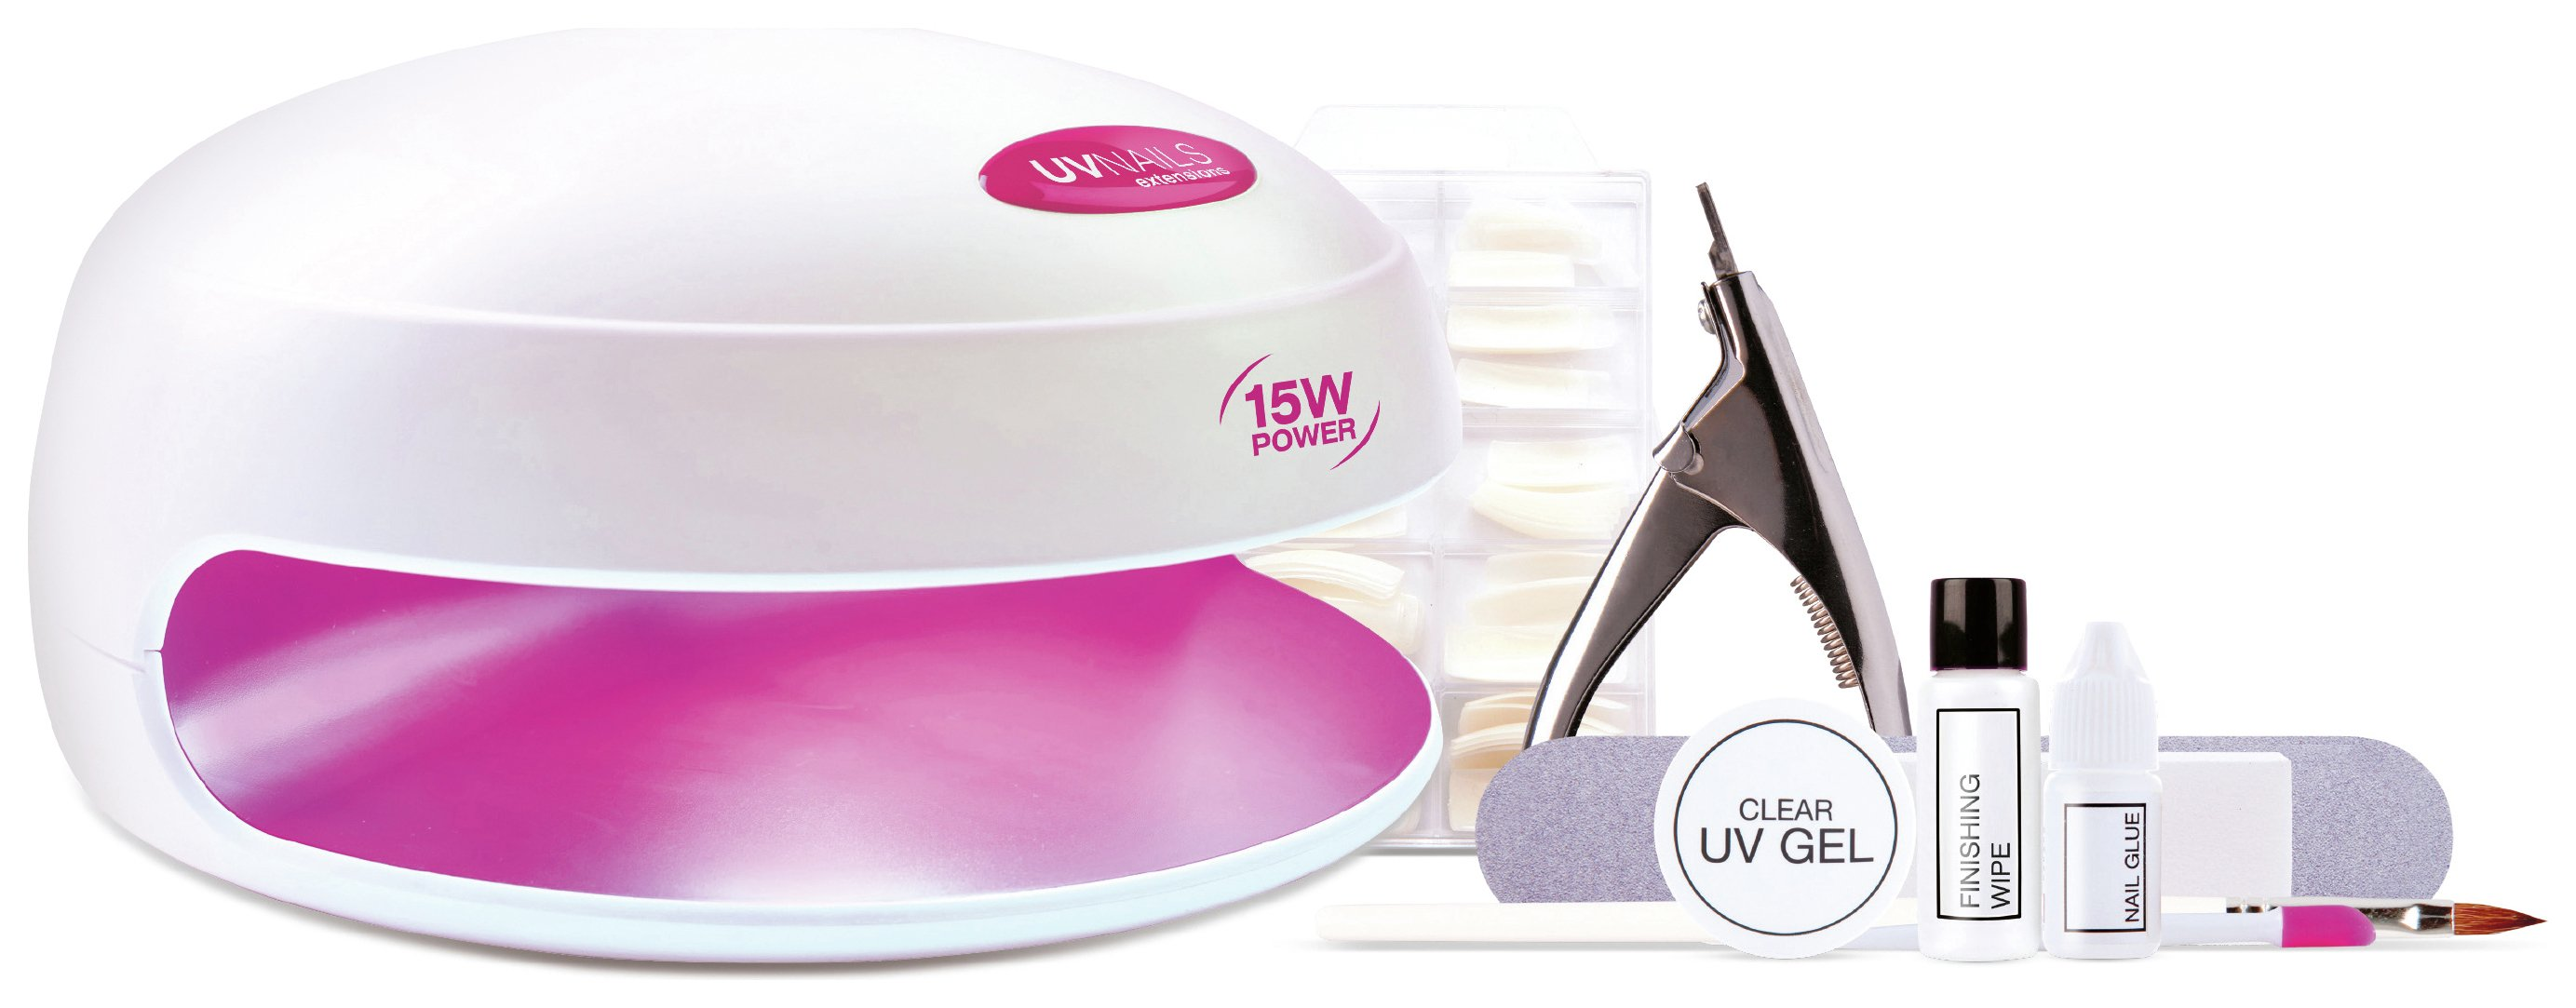 Rio UV Lamp Gel Nail Extension System